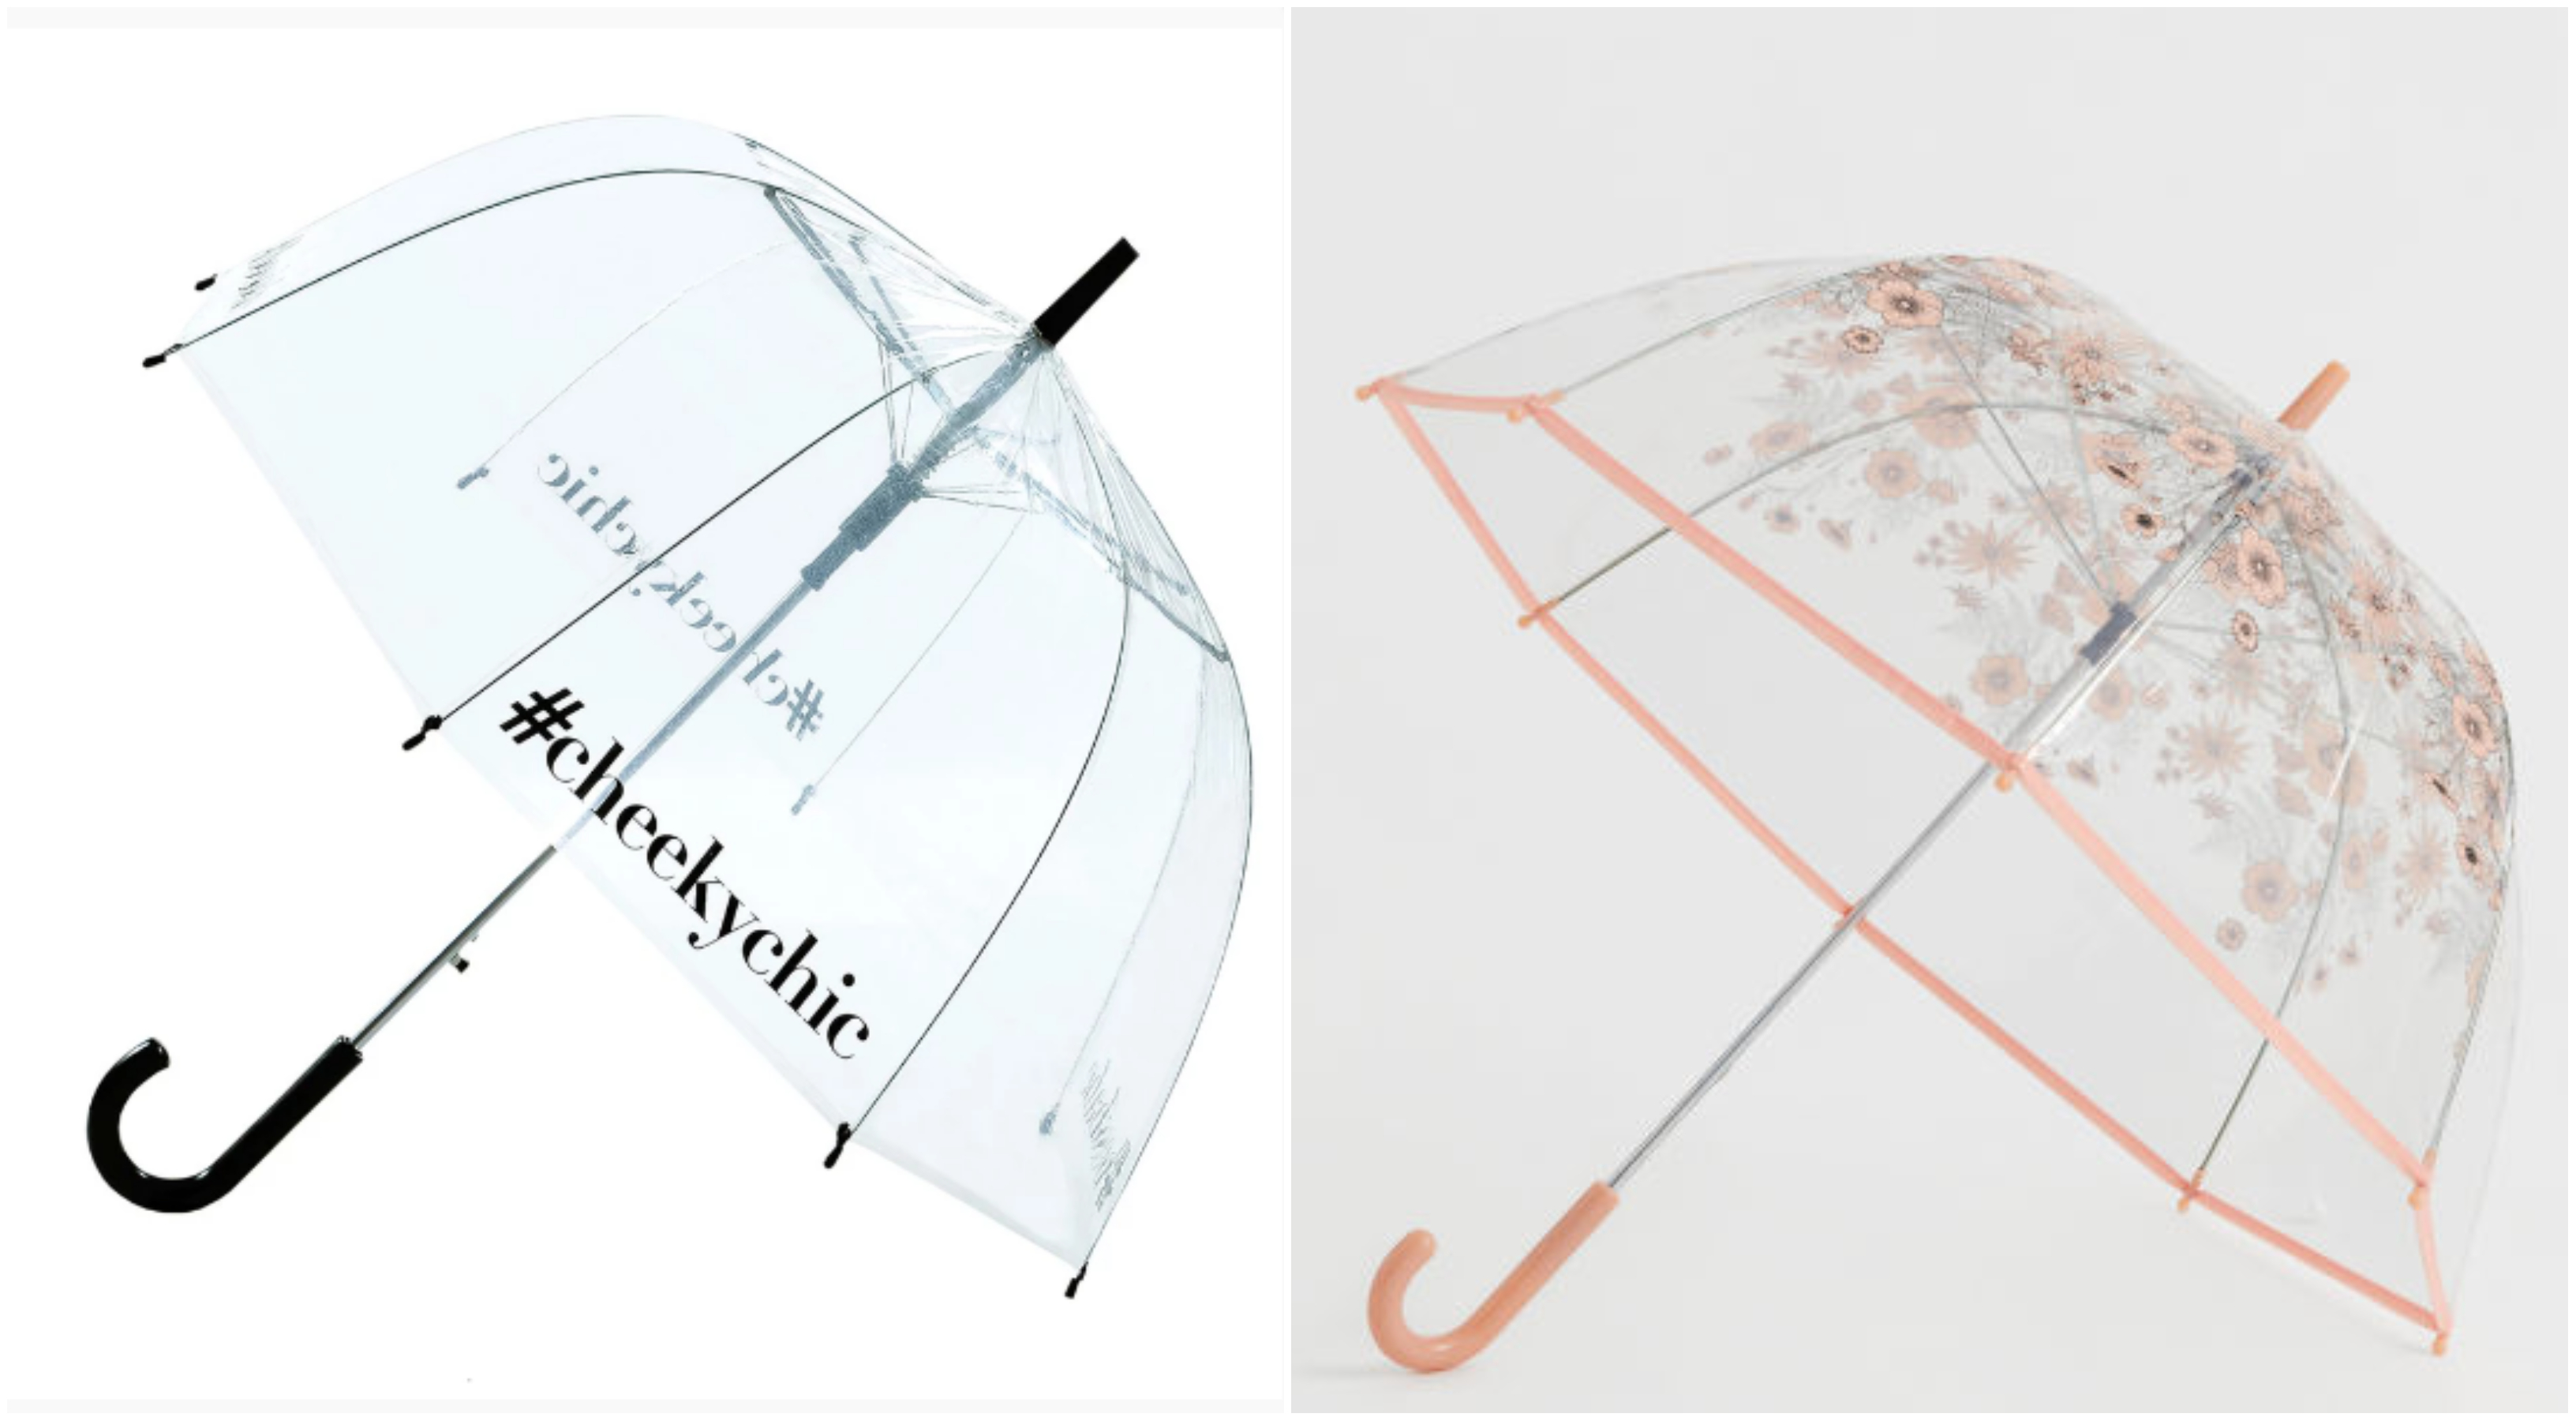 Monsoon fashion - monsoon 2019 - monsoon fashion essentials- Ciceroni - rain gears- zara - forever 21- h&m - gumboots - boots - umbrella - raincoats - transparent bags - rain essentials - monsoon gears - rain fashion - chic and classy -   netflix - books - rains - clouds - coffee- party - after work